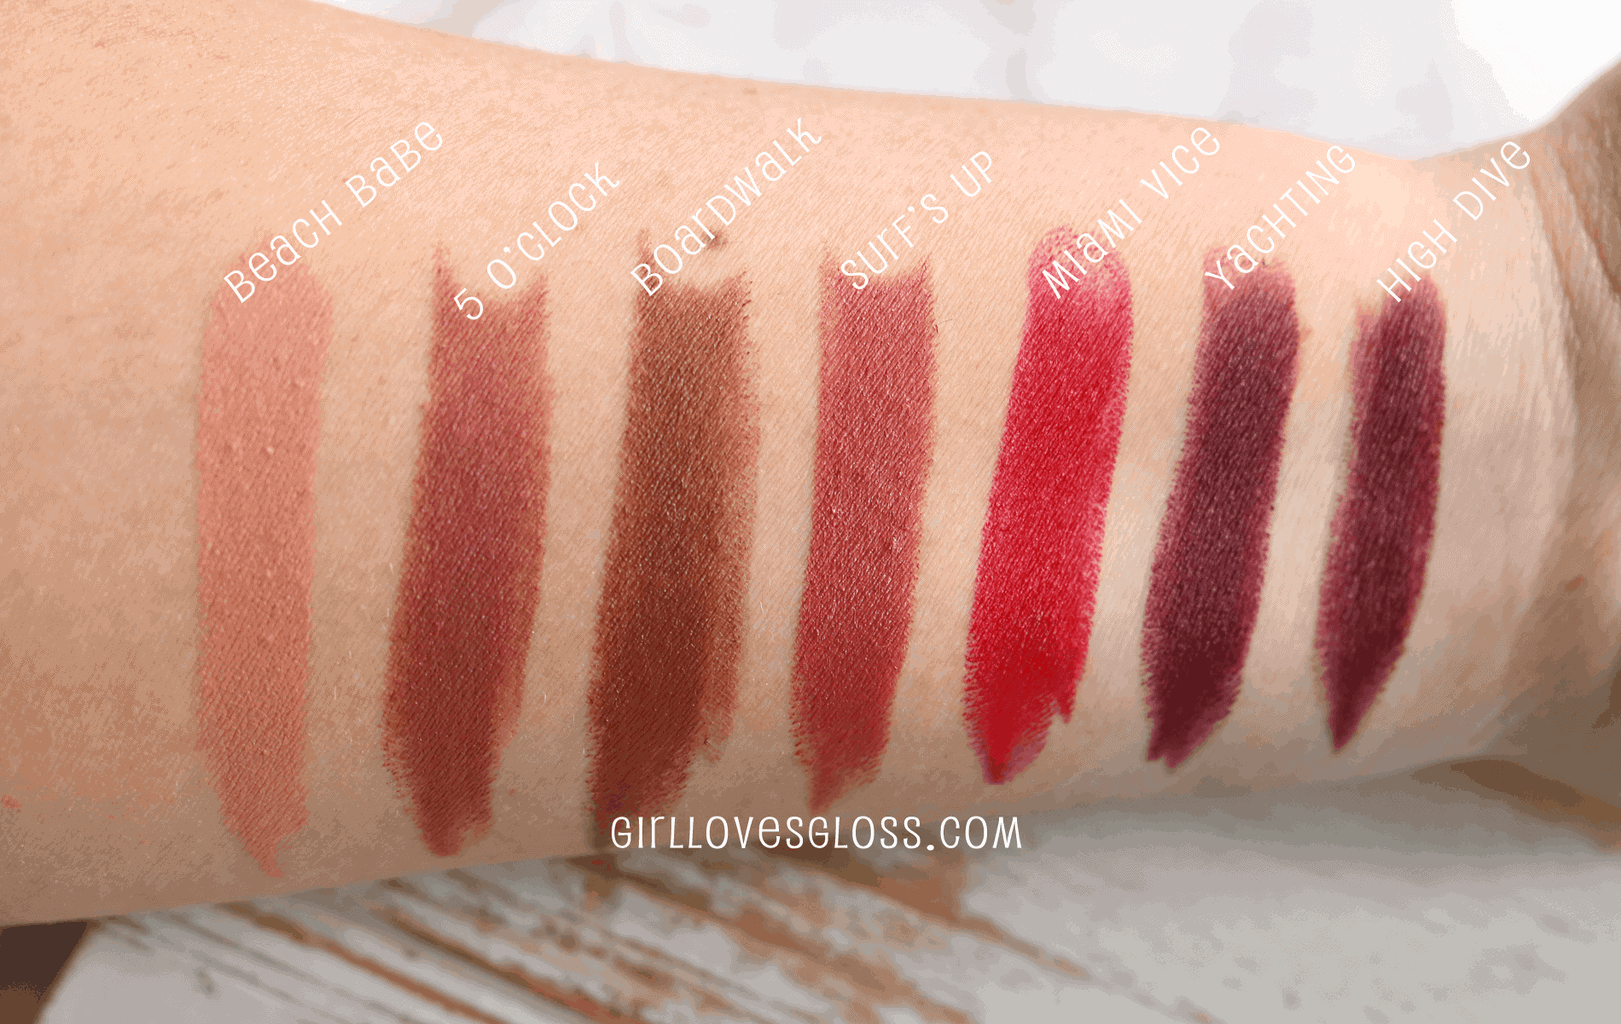 Tarte Color Splash Lipsticks